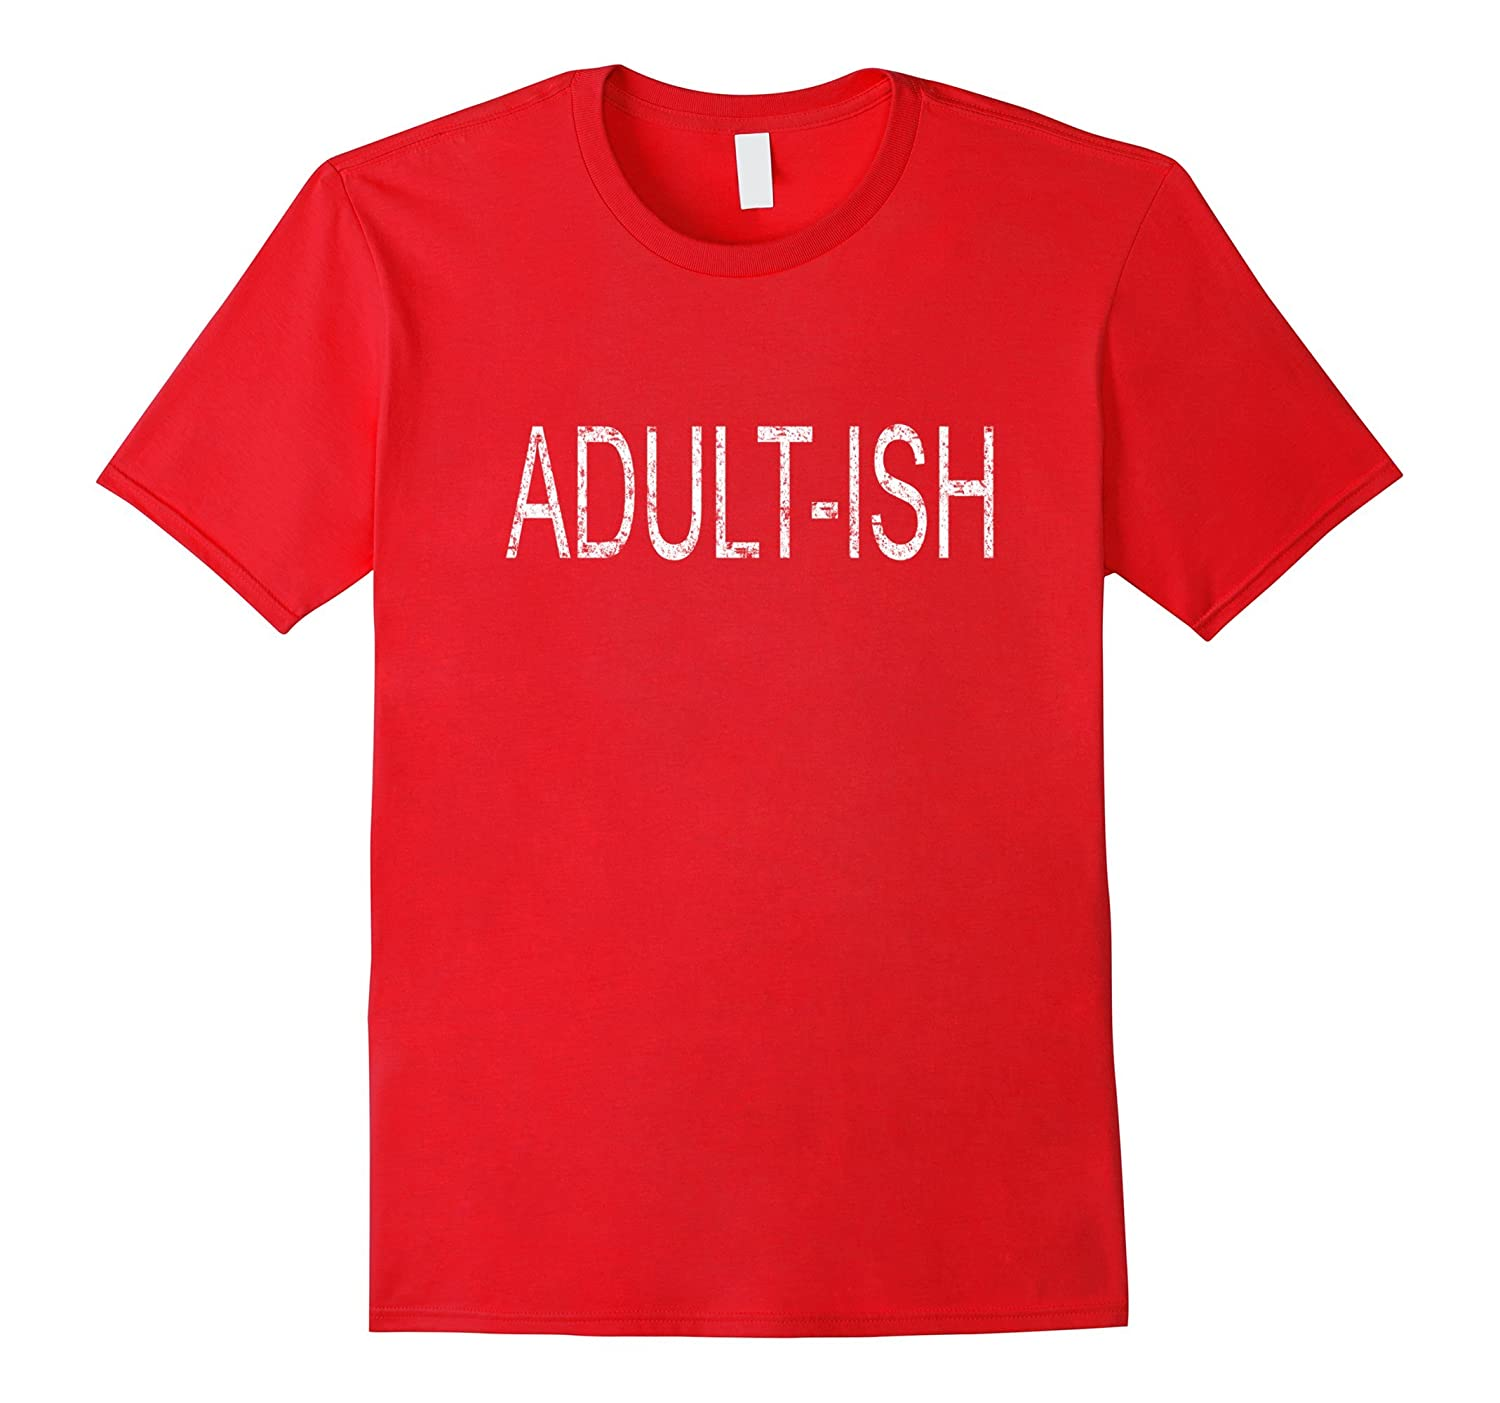 Adult-Ish Funny Vintage Style Adult T-Shirt-CL